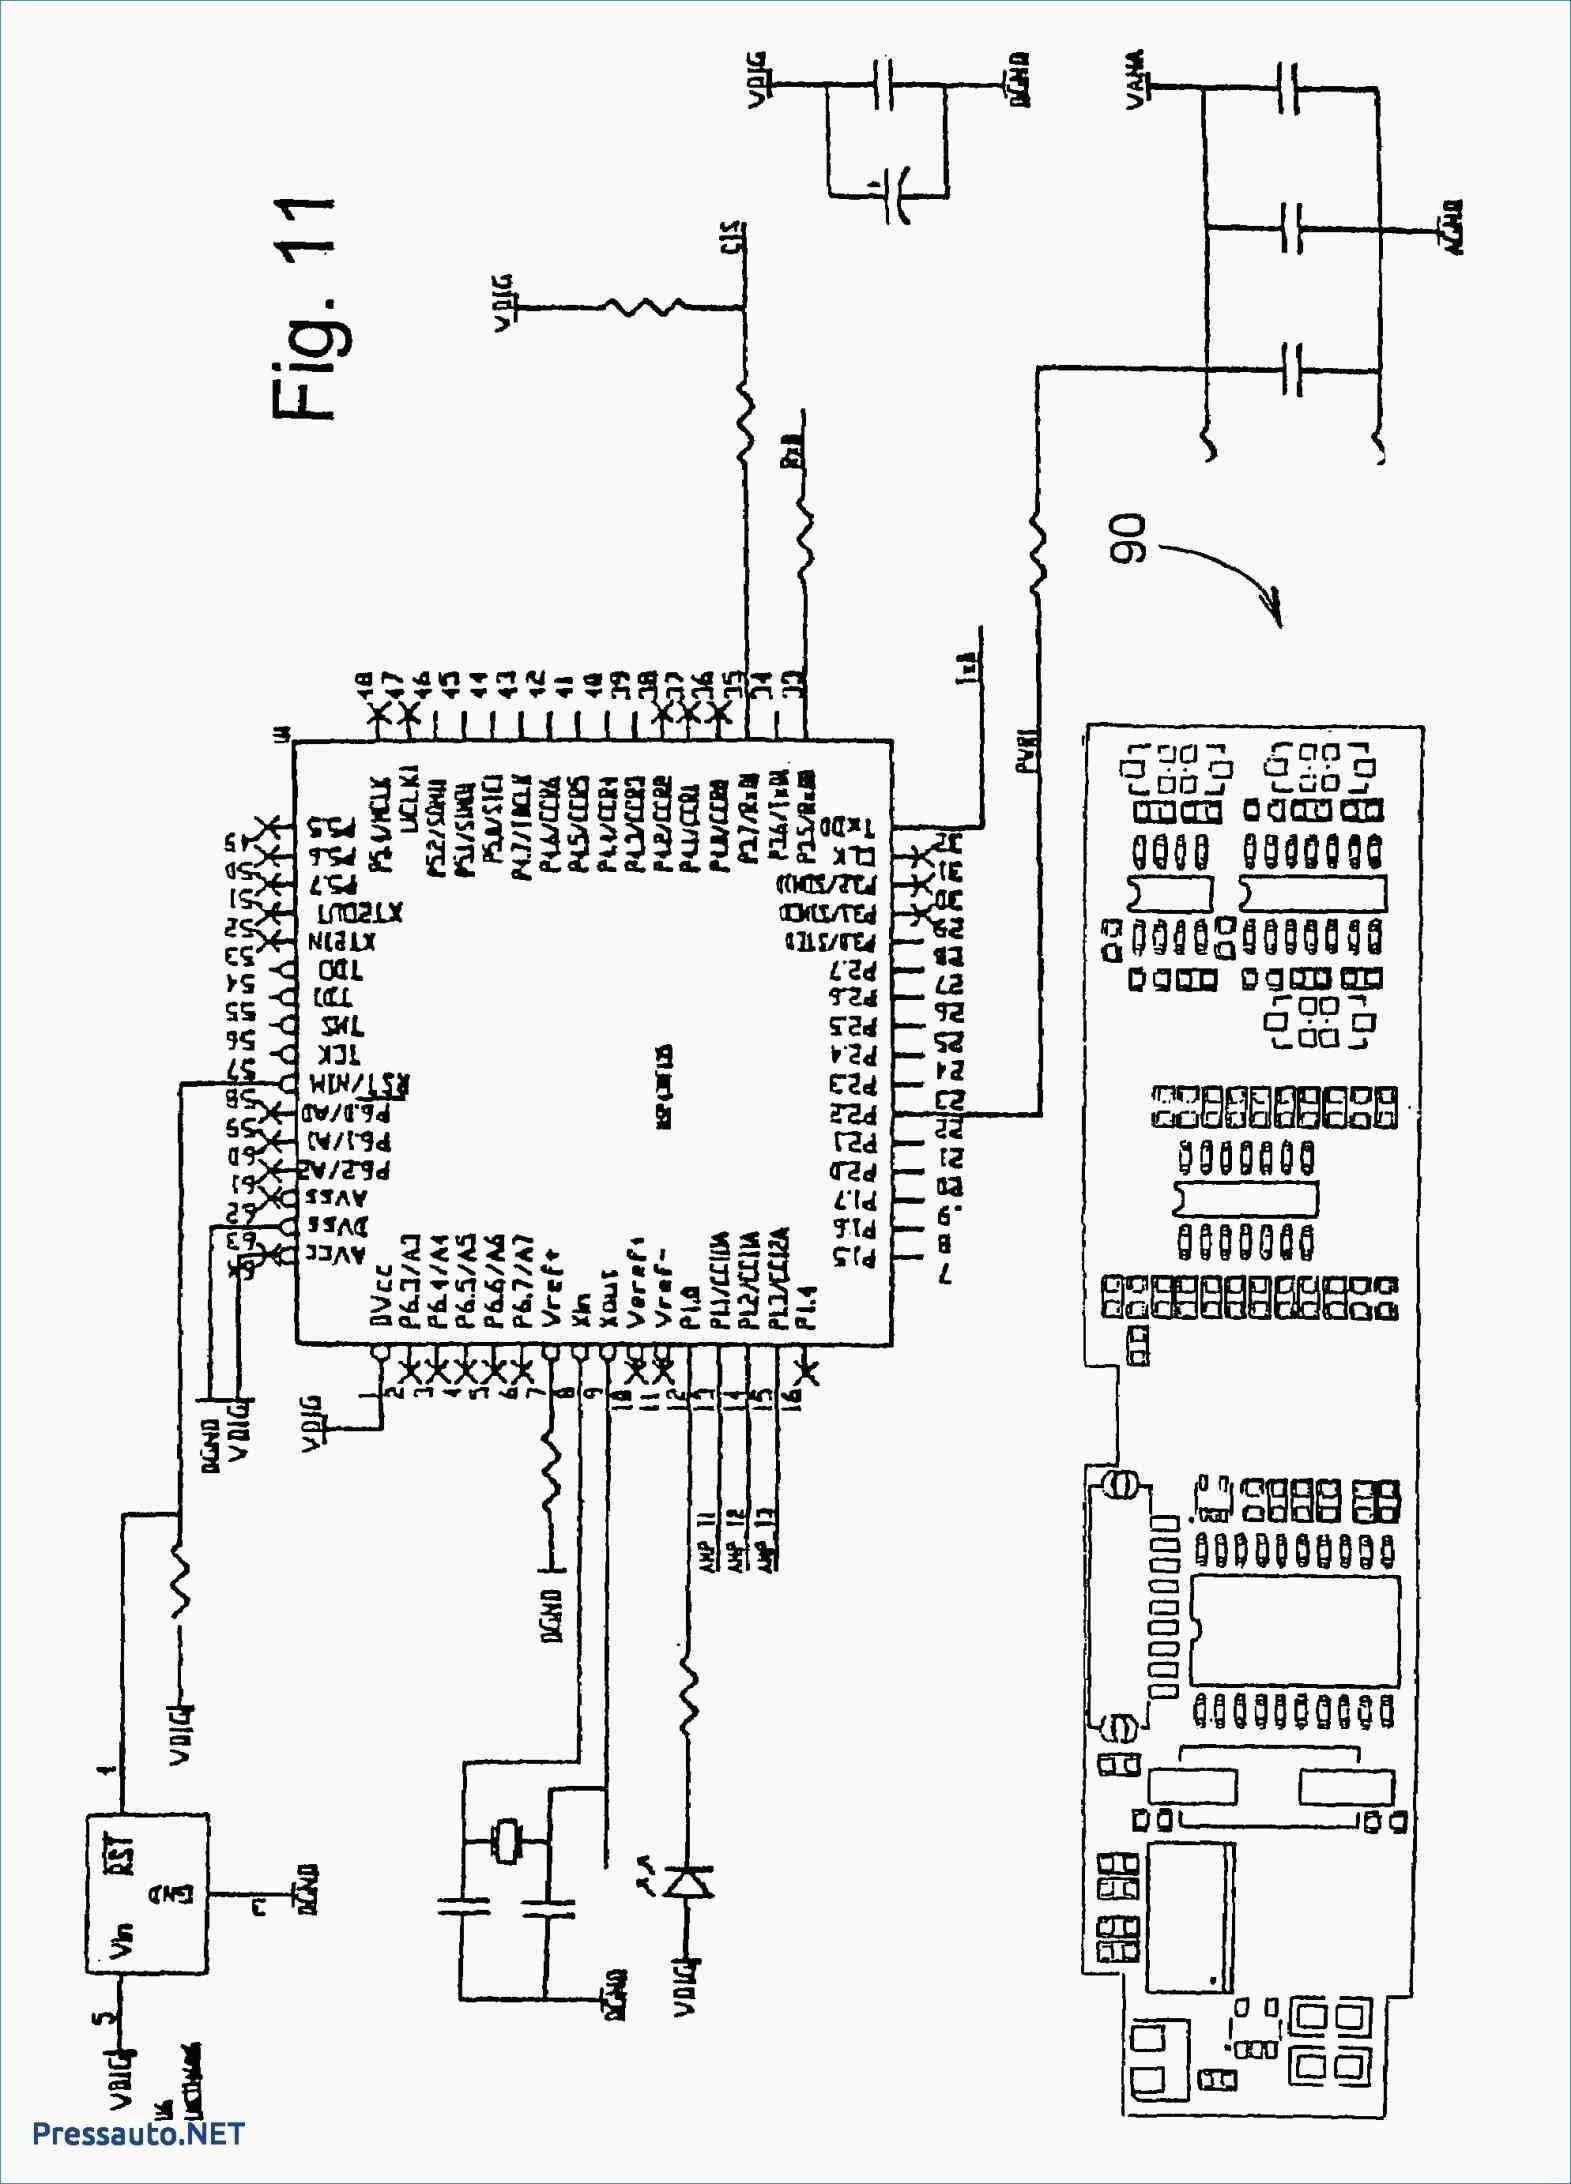 Usb Mouse Wiring Diagram